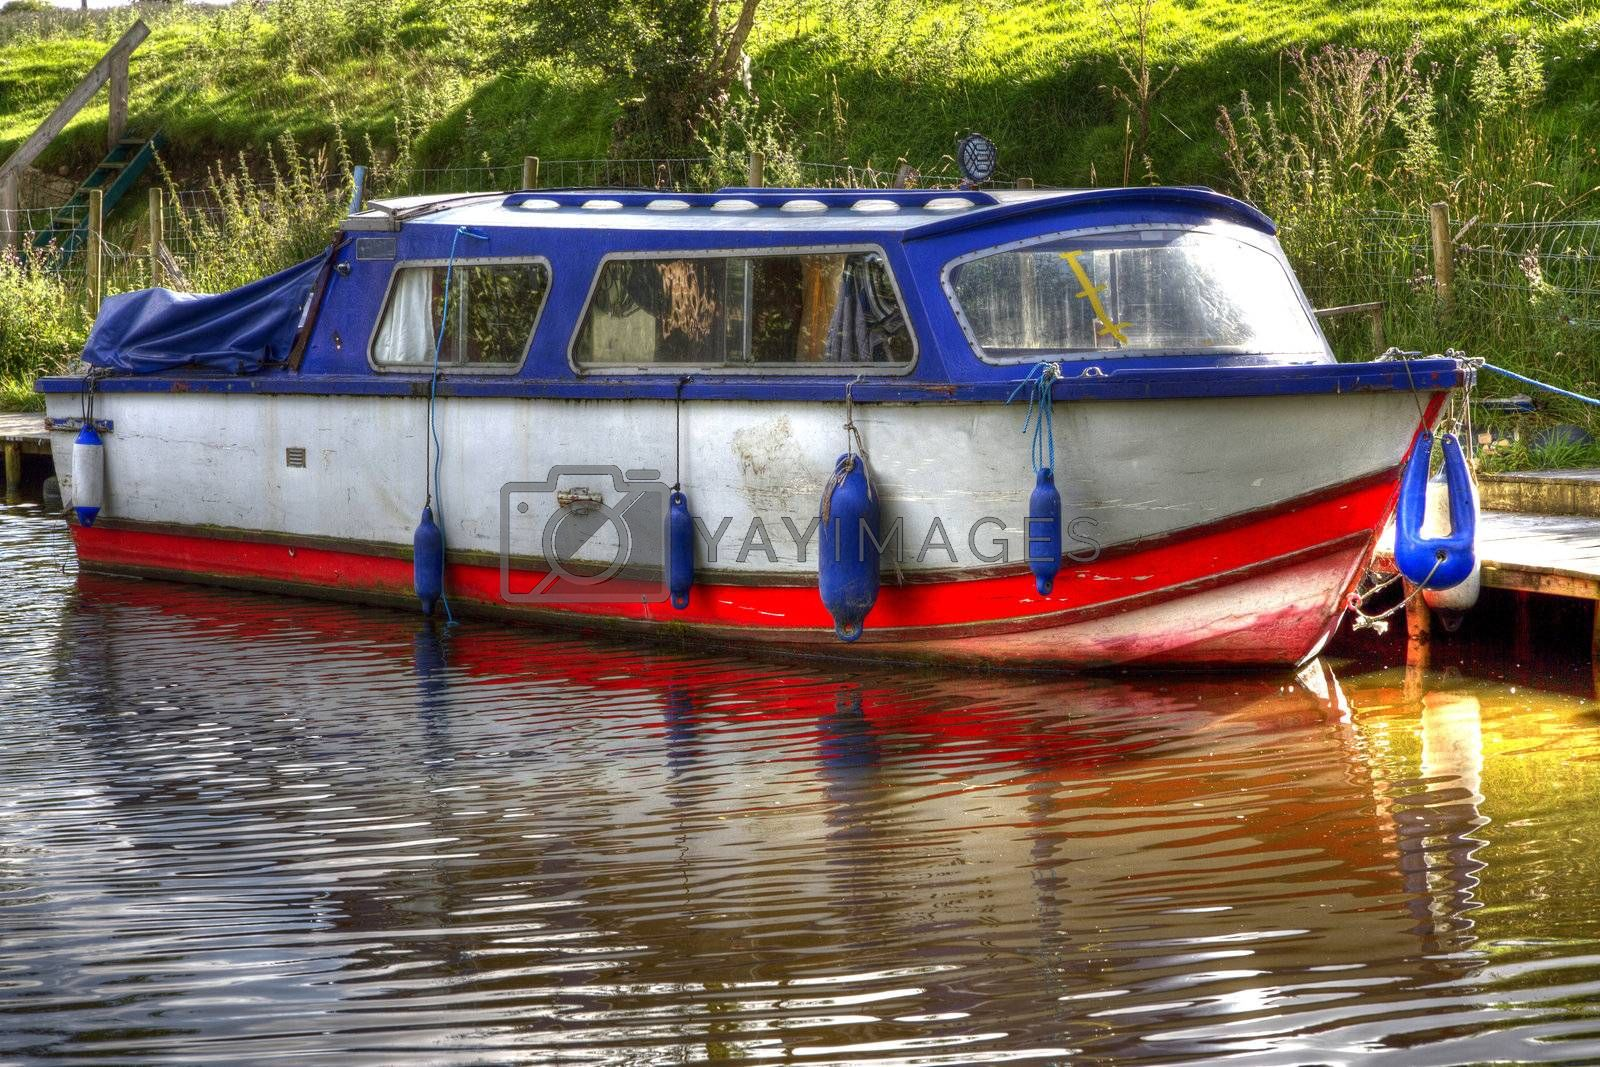 Boat on the Canal somewhere in North Lancashire, UK